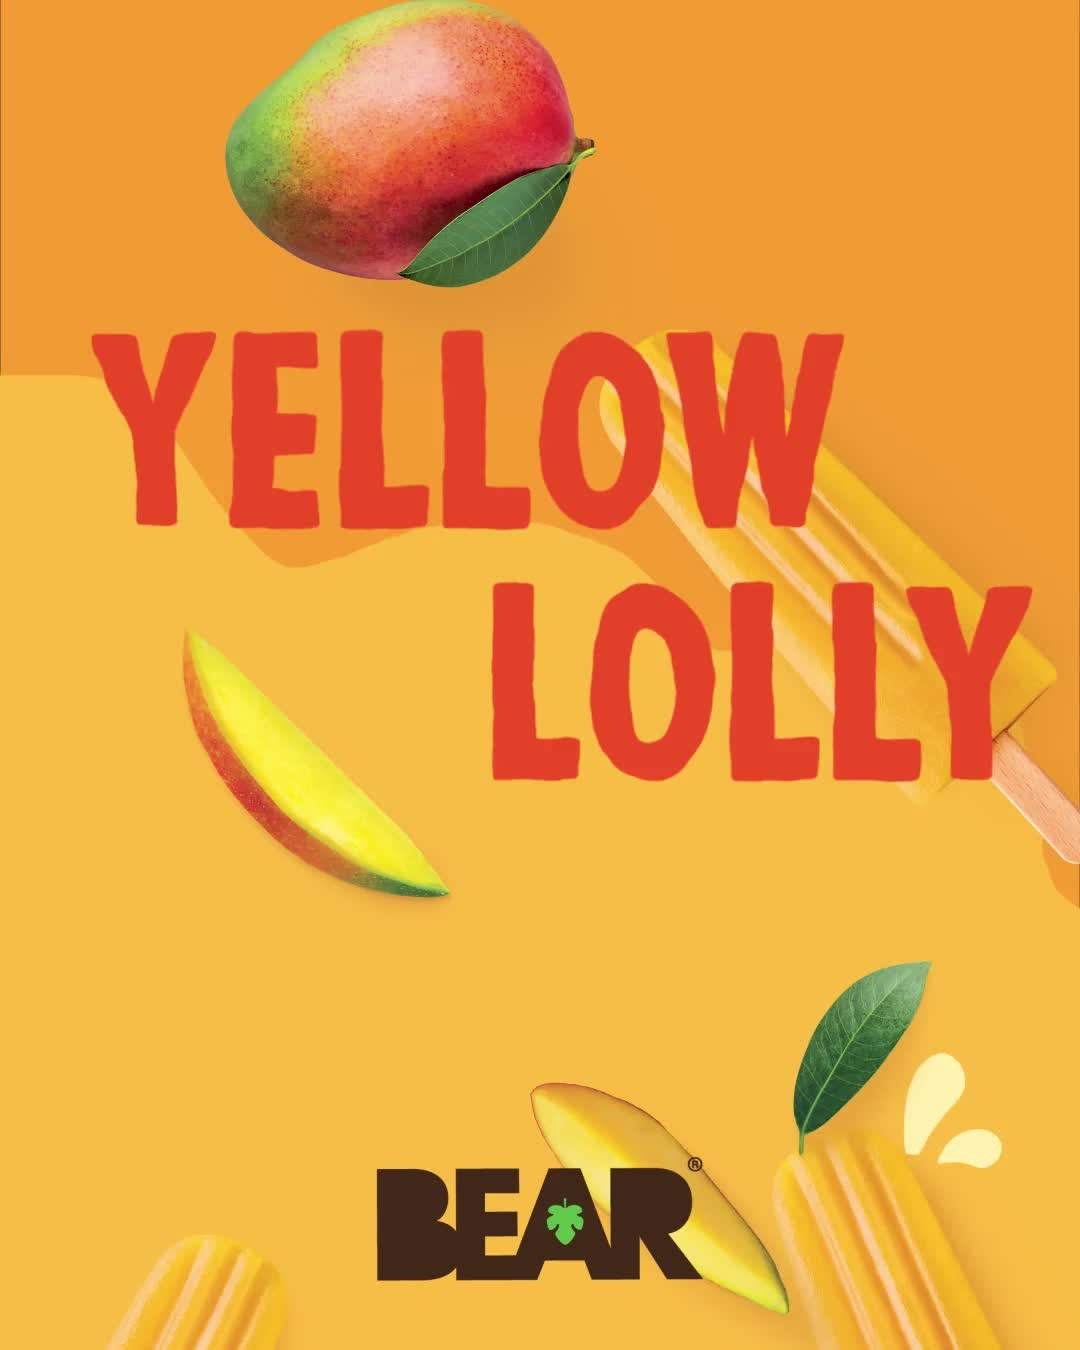 Tongue tied, sun outside, red or yellow - you decide ☀️   Find BEAR Lollies in the Waitrose Frozen Aisle now 🐻🥭🍓  #BEARsnacks #BEARlollies #RealFruit #RealFlavour #RealFun #redlolly #yellowlolly